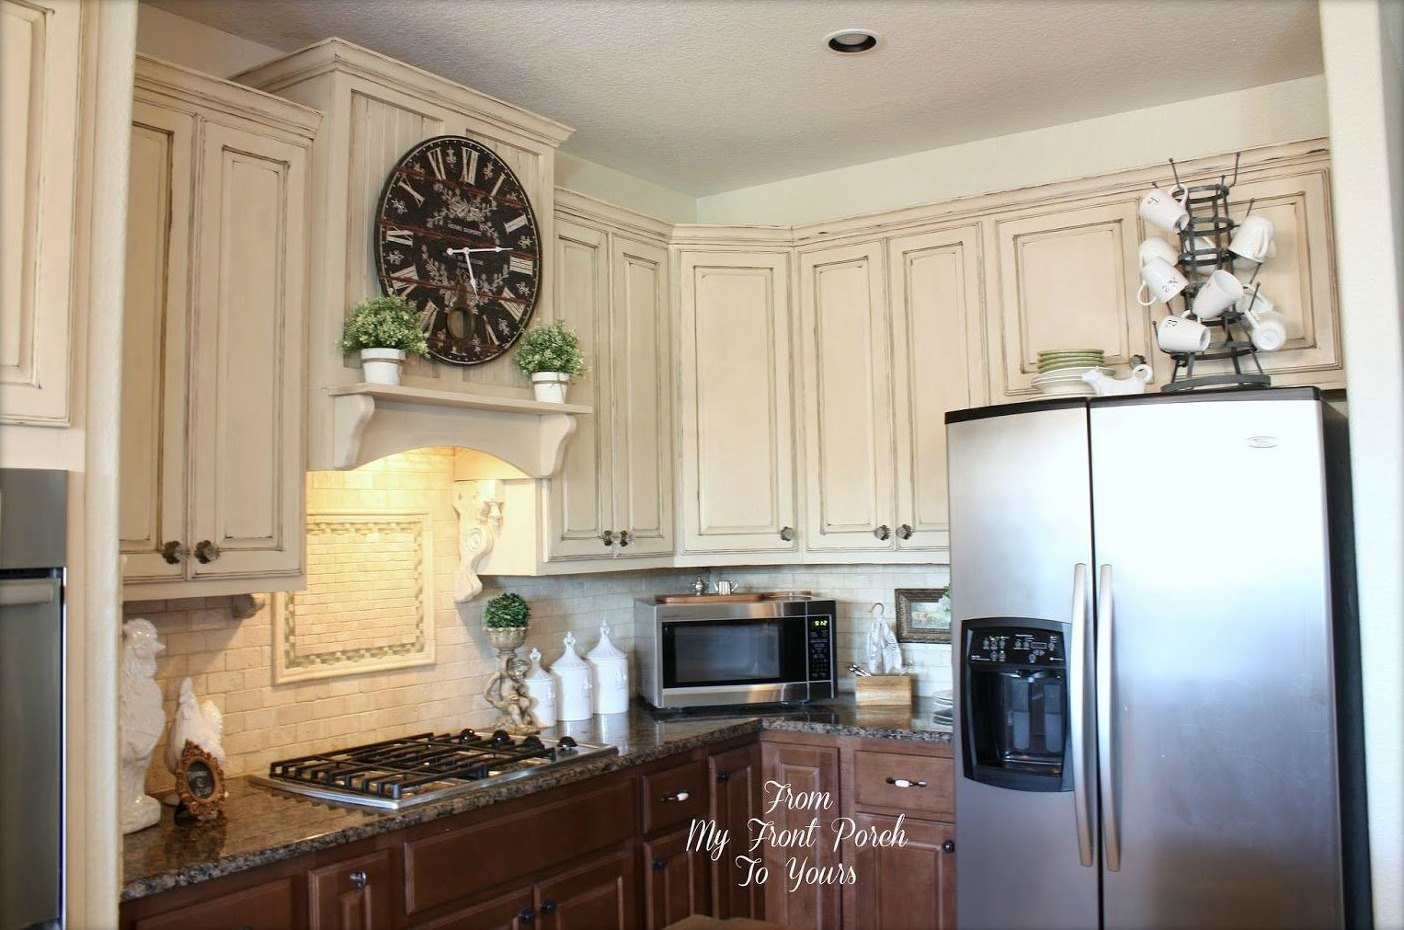 13 ways to instantly brighten up a boring kitchen hometalk for Who paints kitchen cabinets